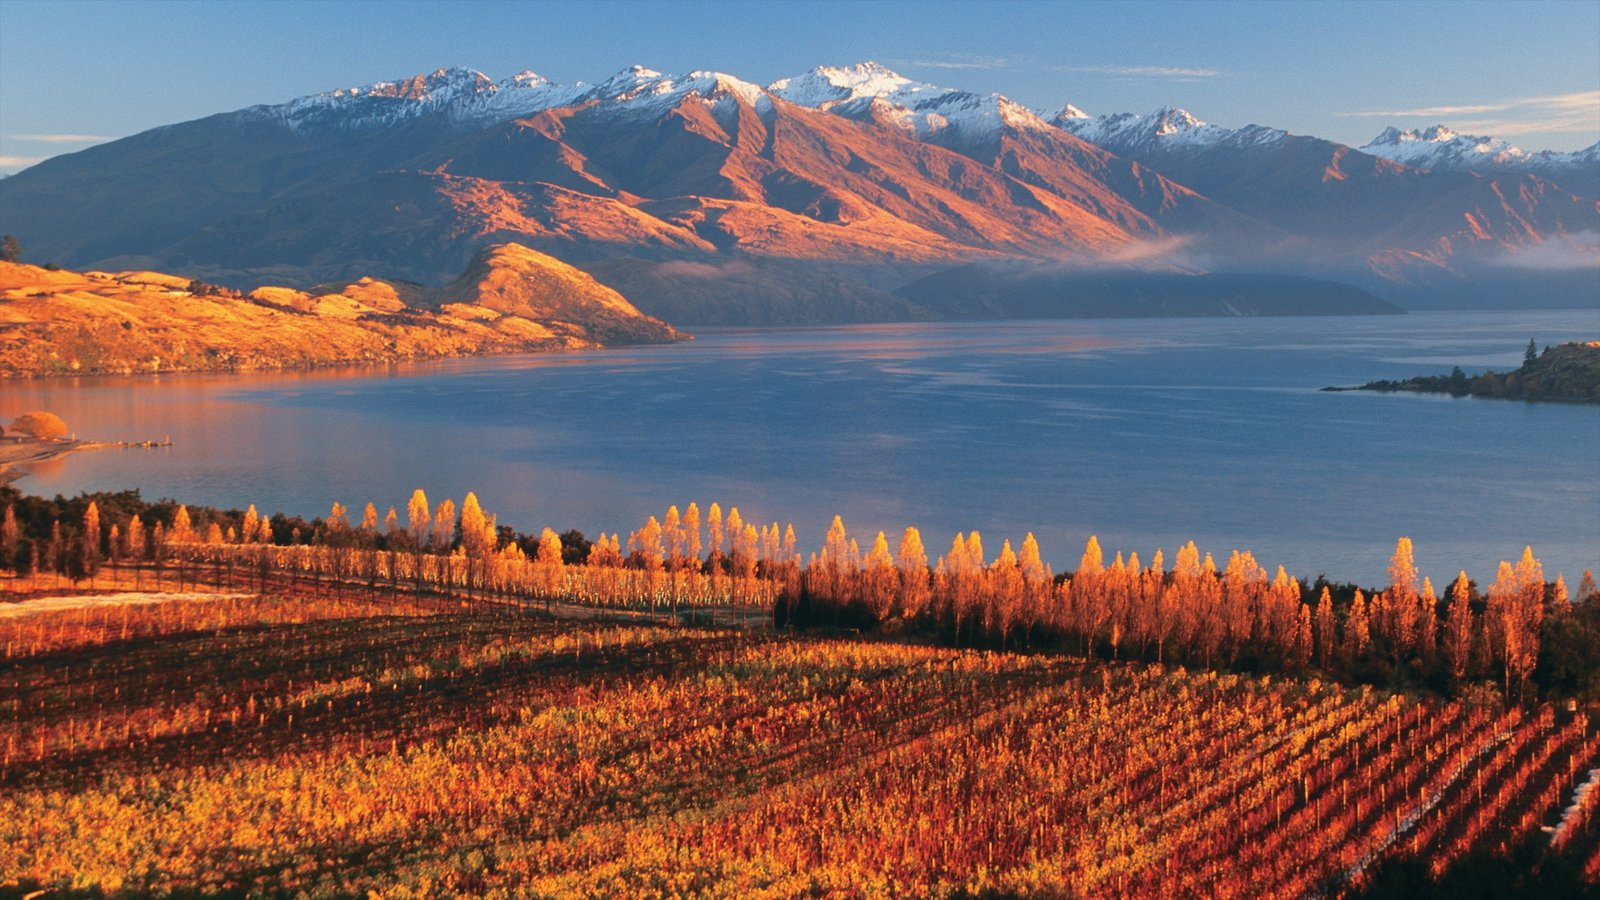 Wanaka which includes a sunset, fall colors and a lake or waterhole